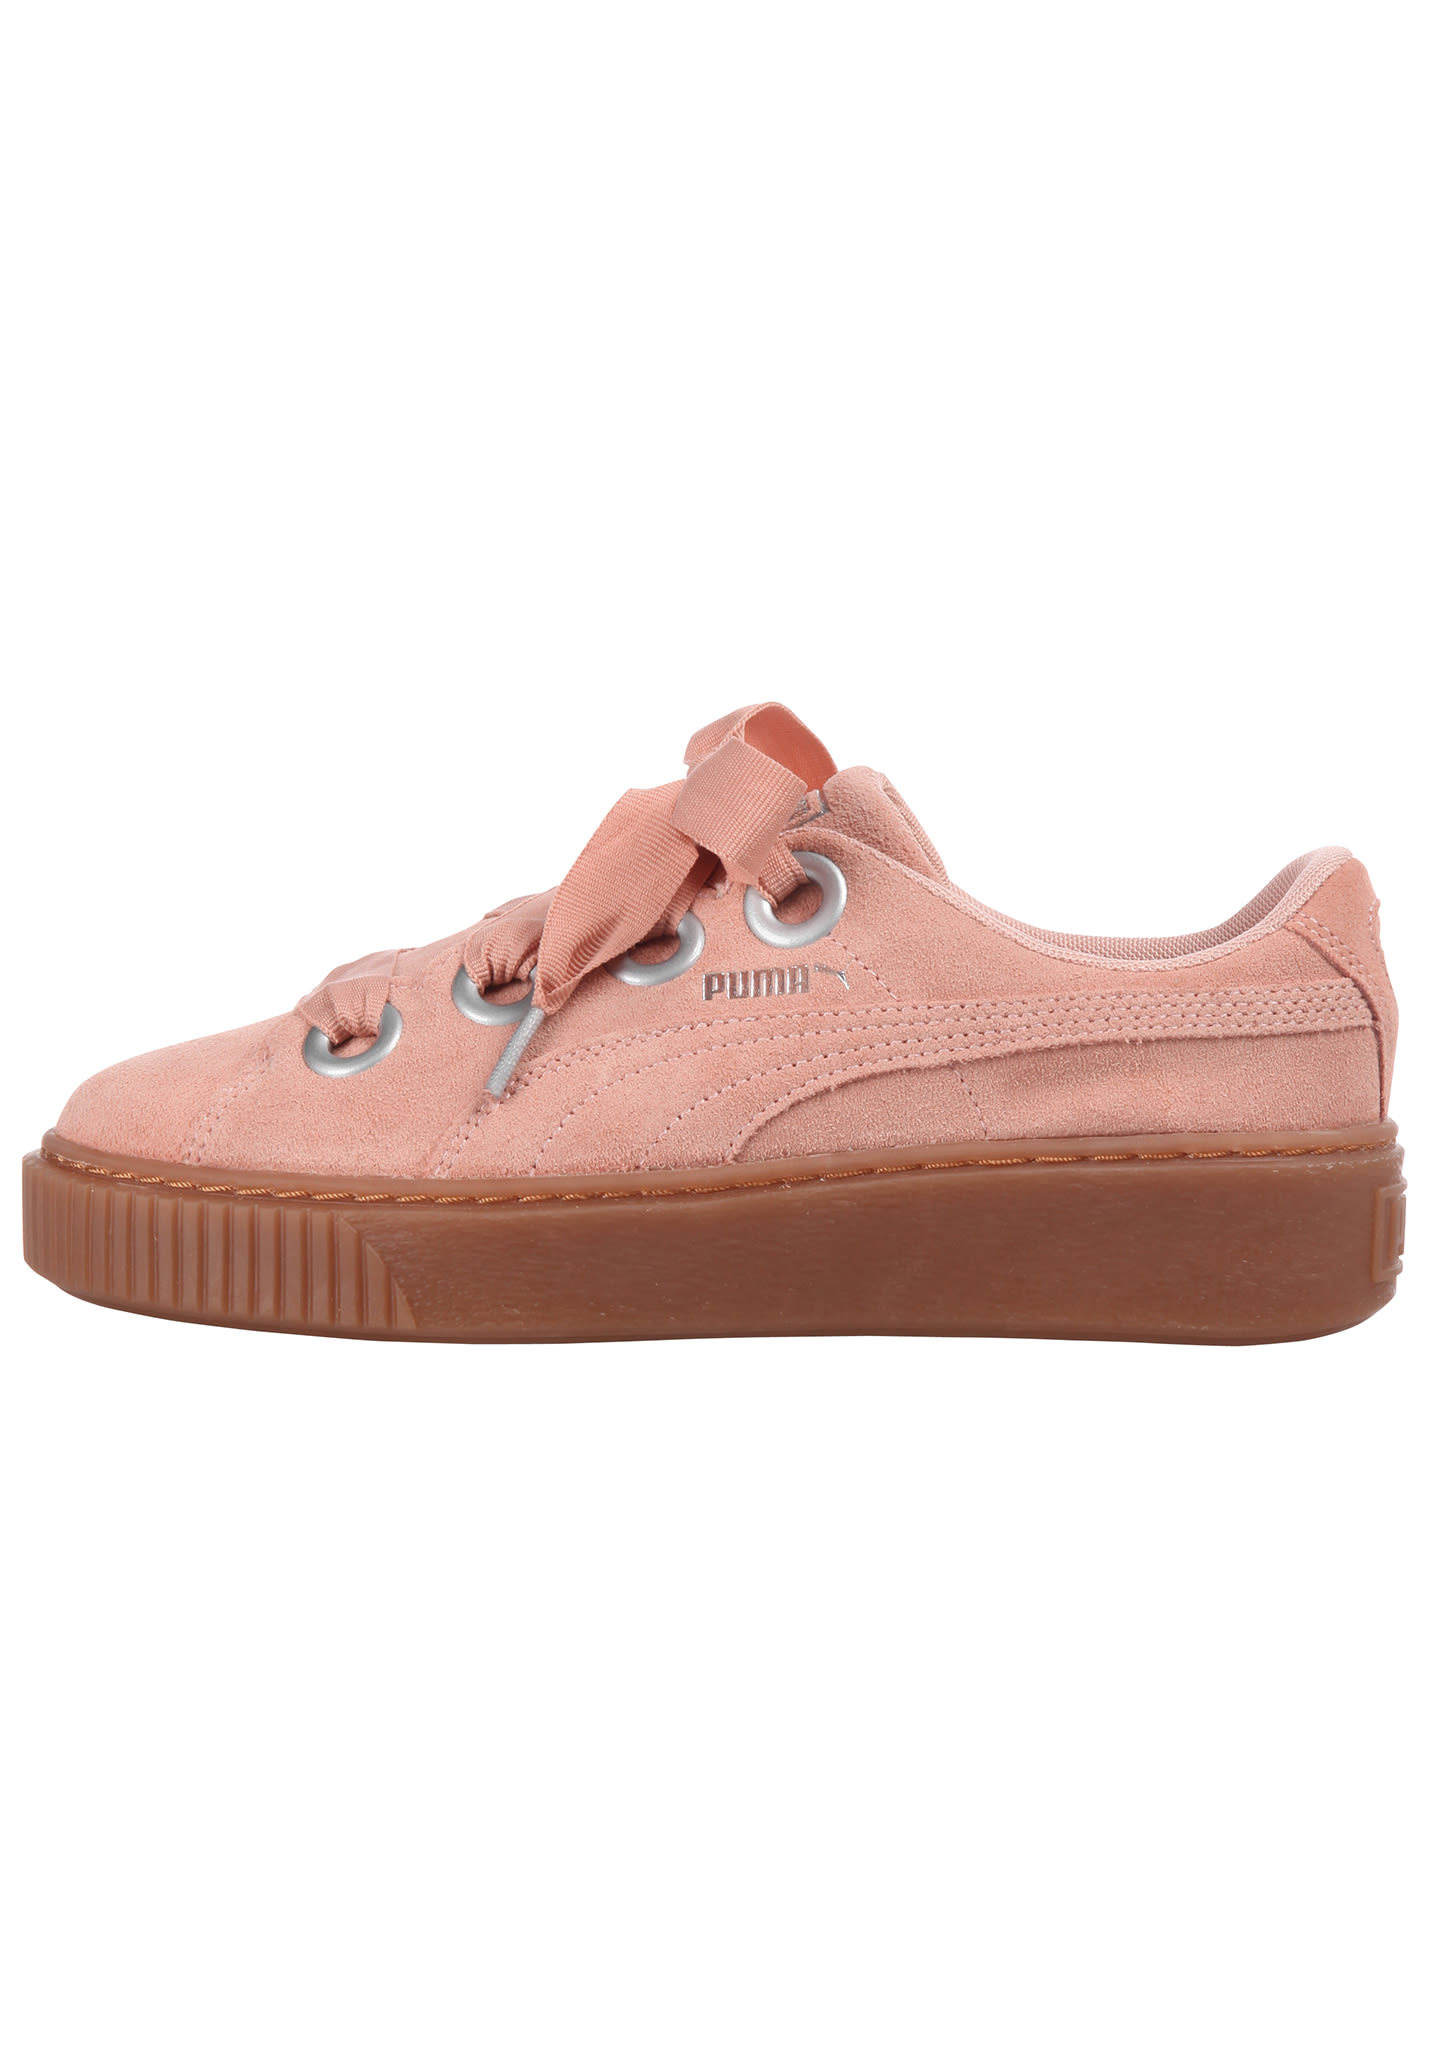 Puma Sneakers Suede Pink Women Platform Kiss For qSUzVpMG